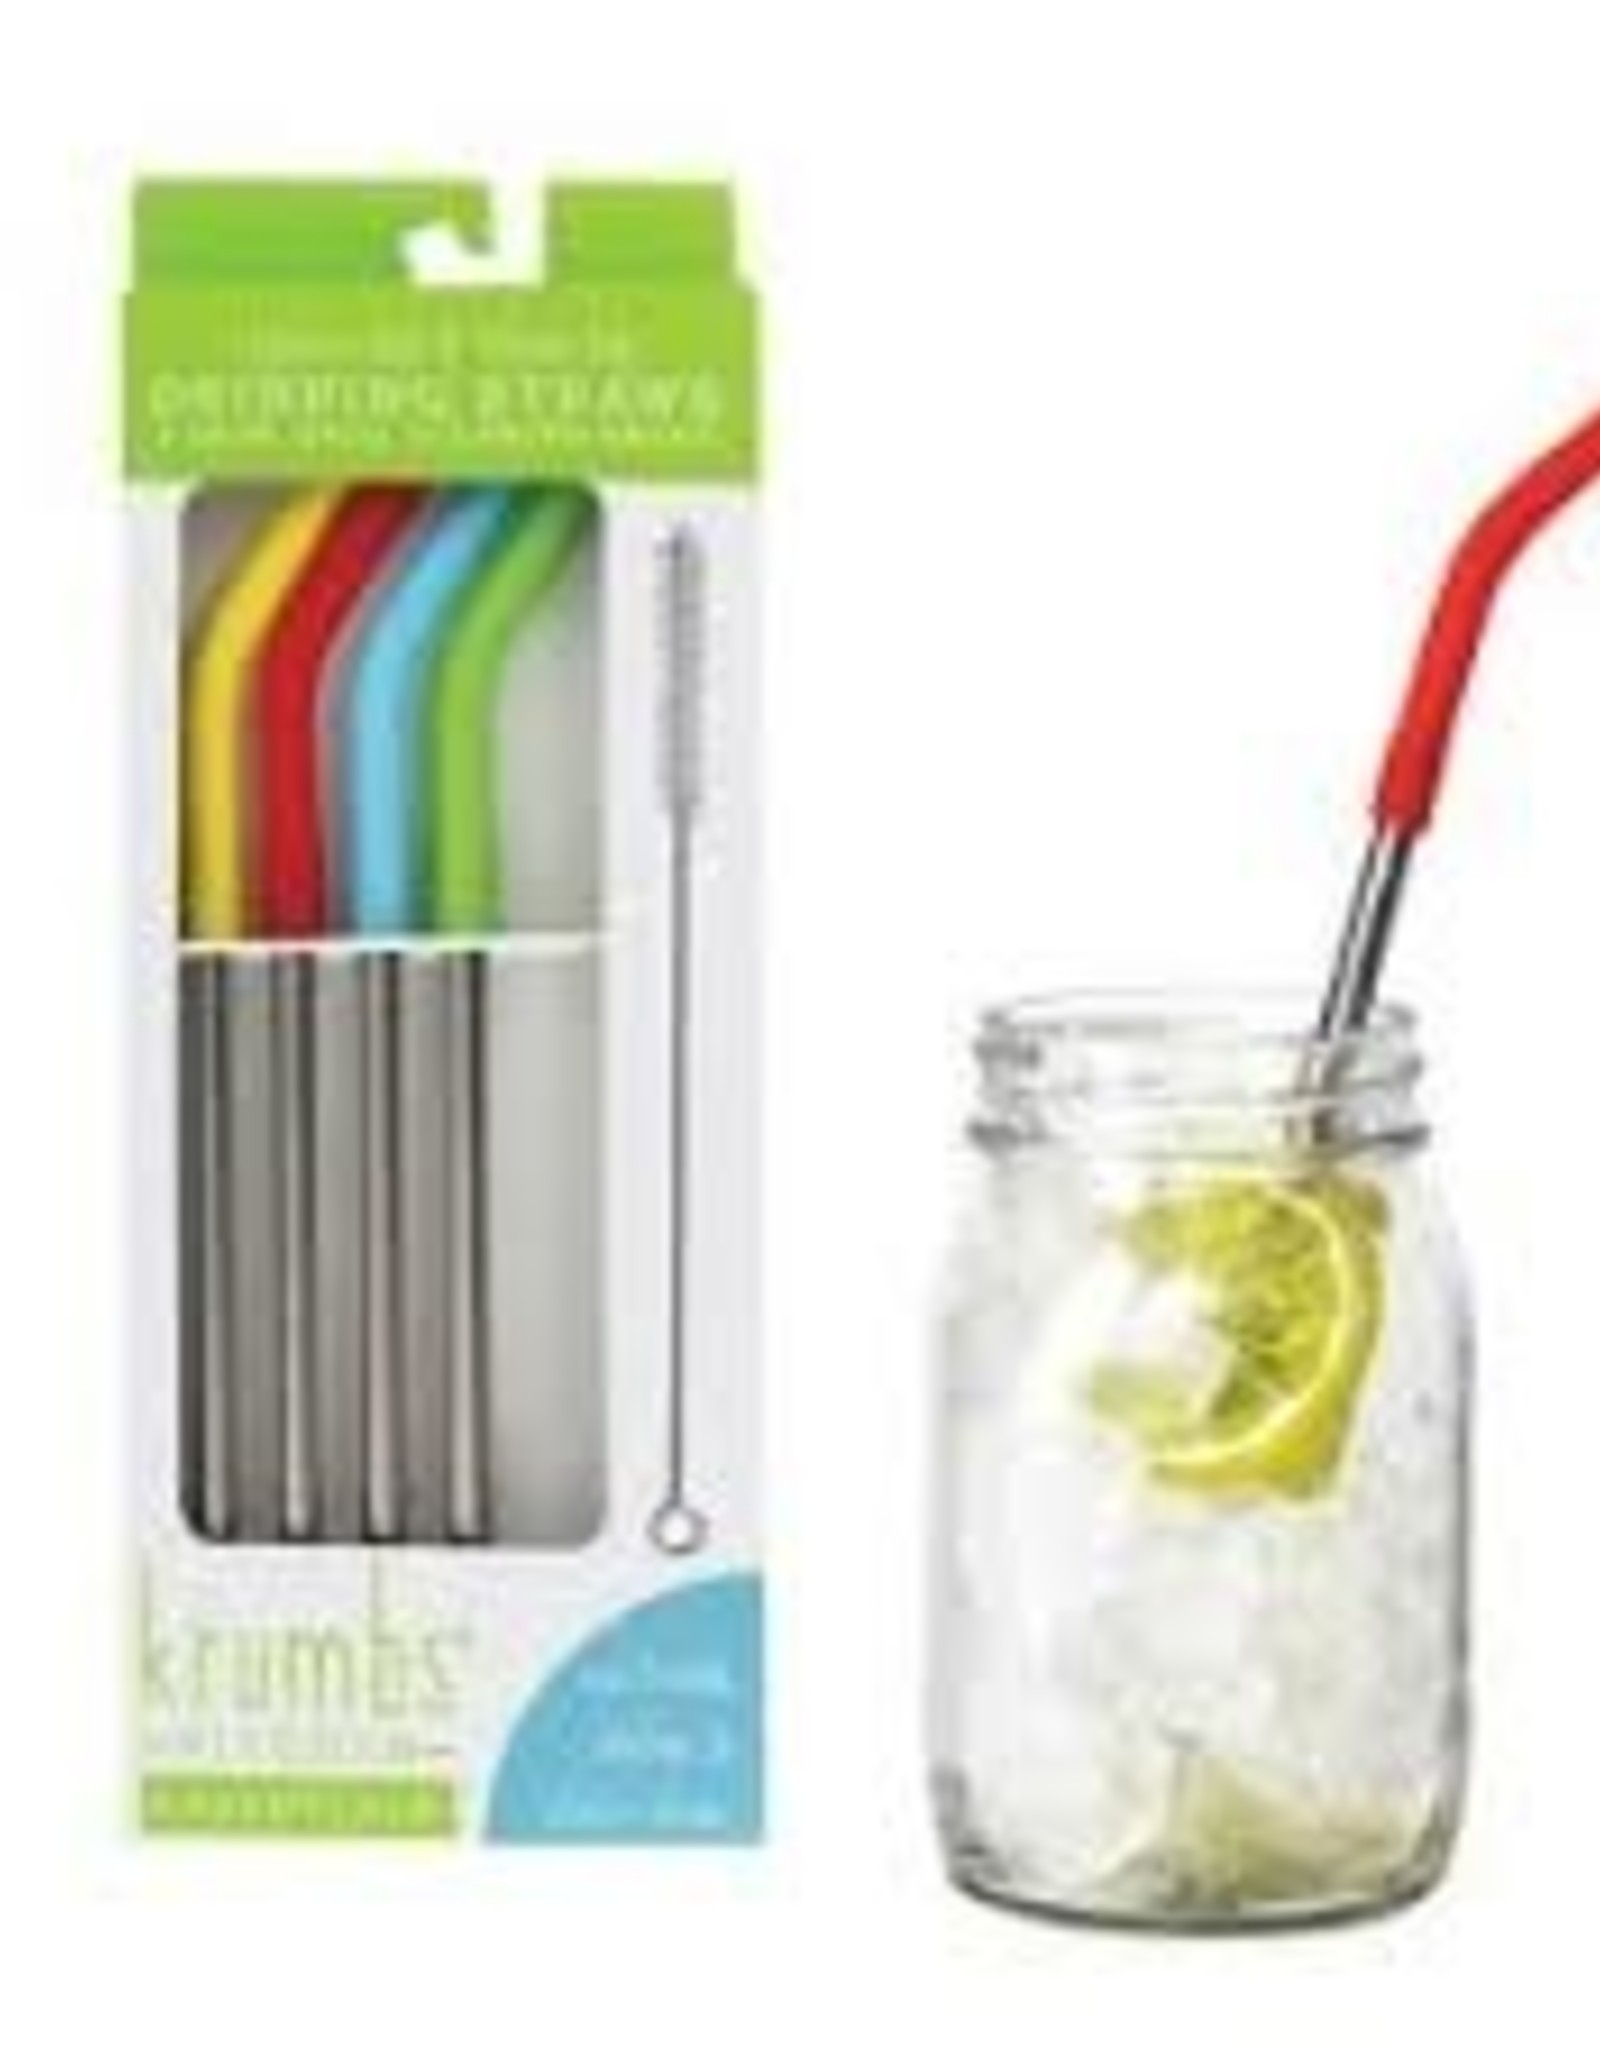 Stainless Steal Straw Set